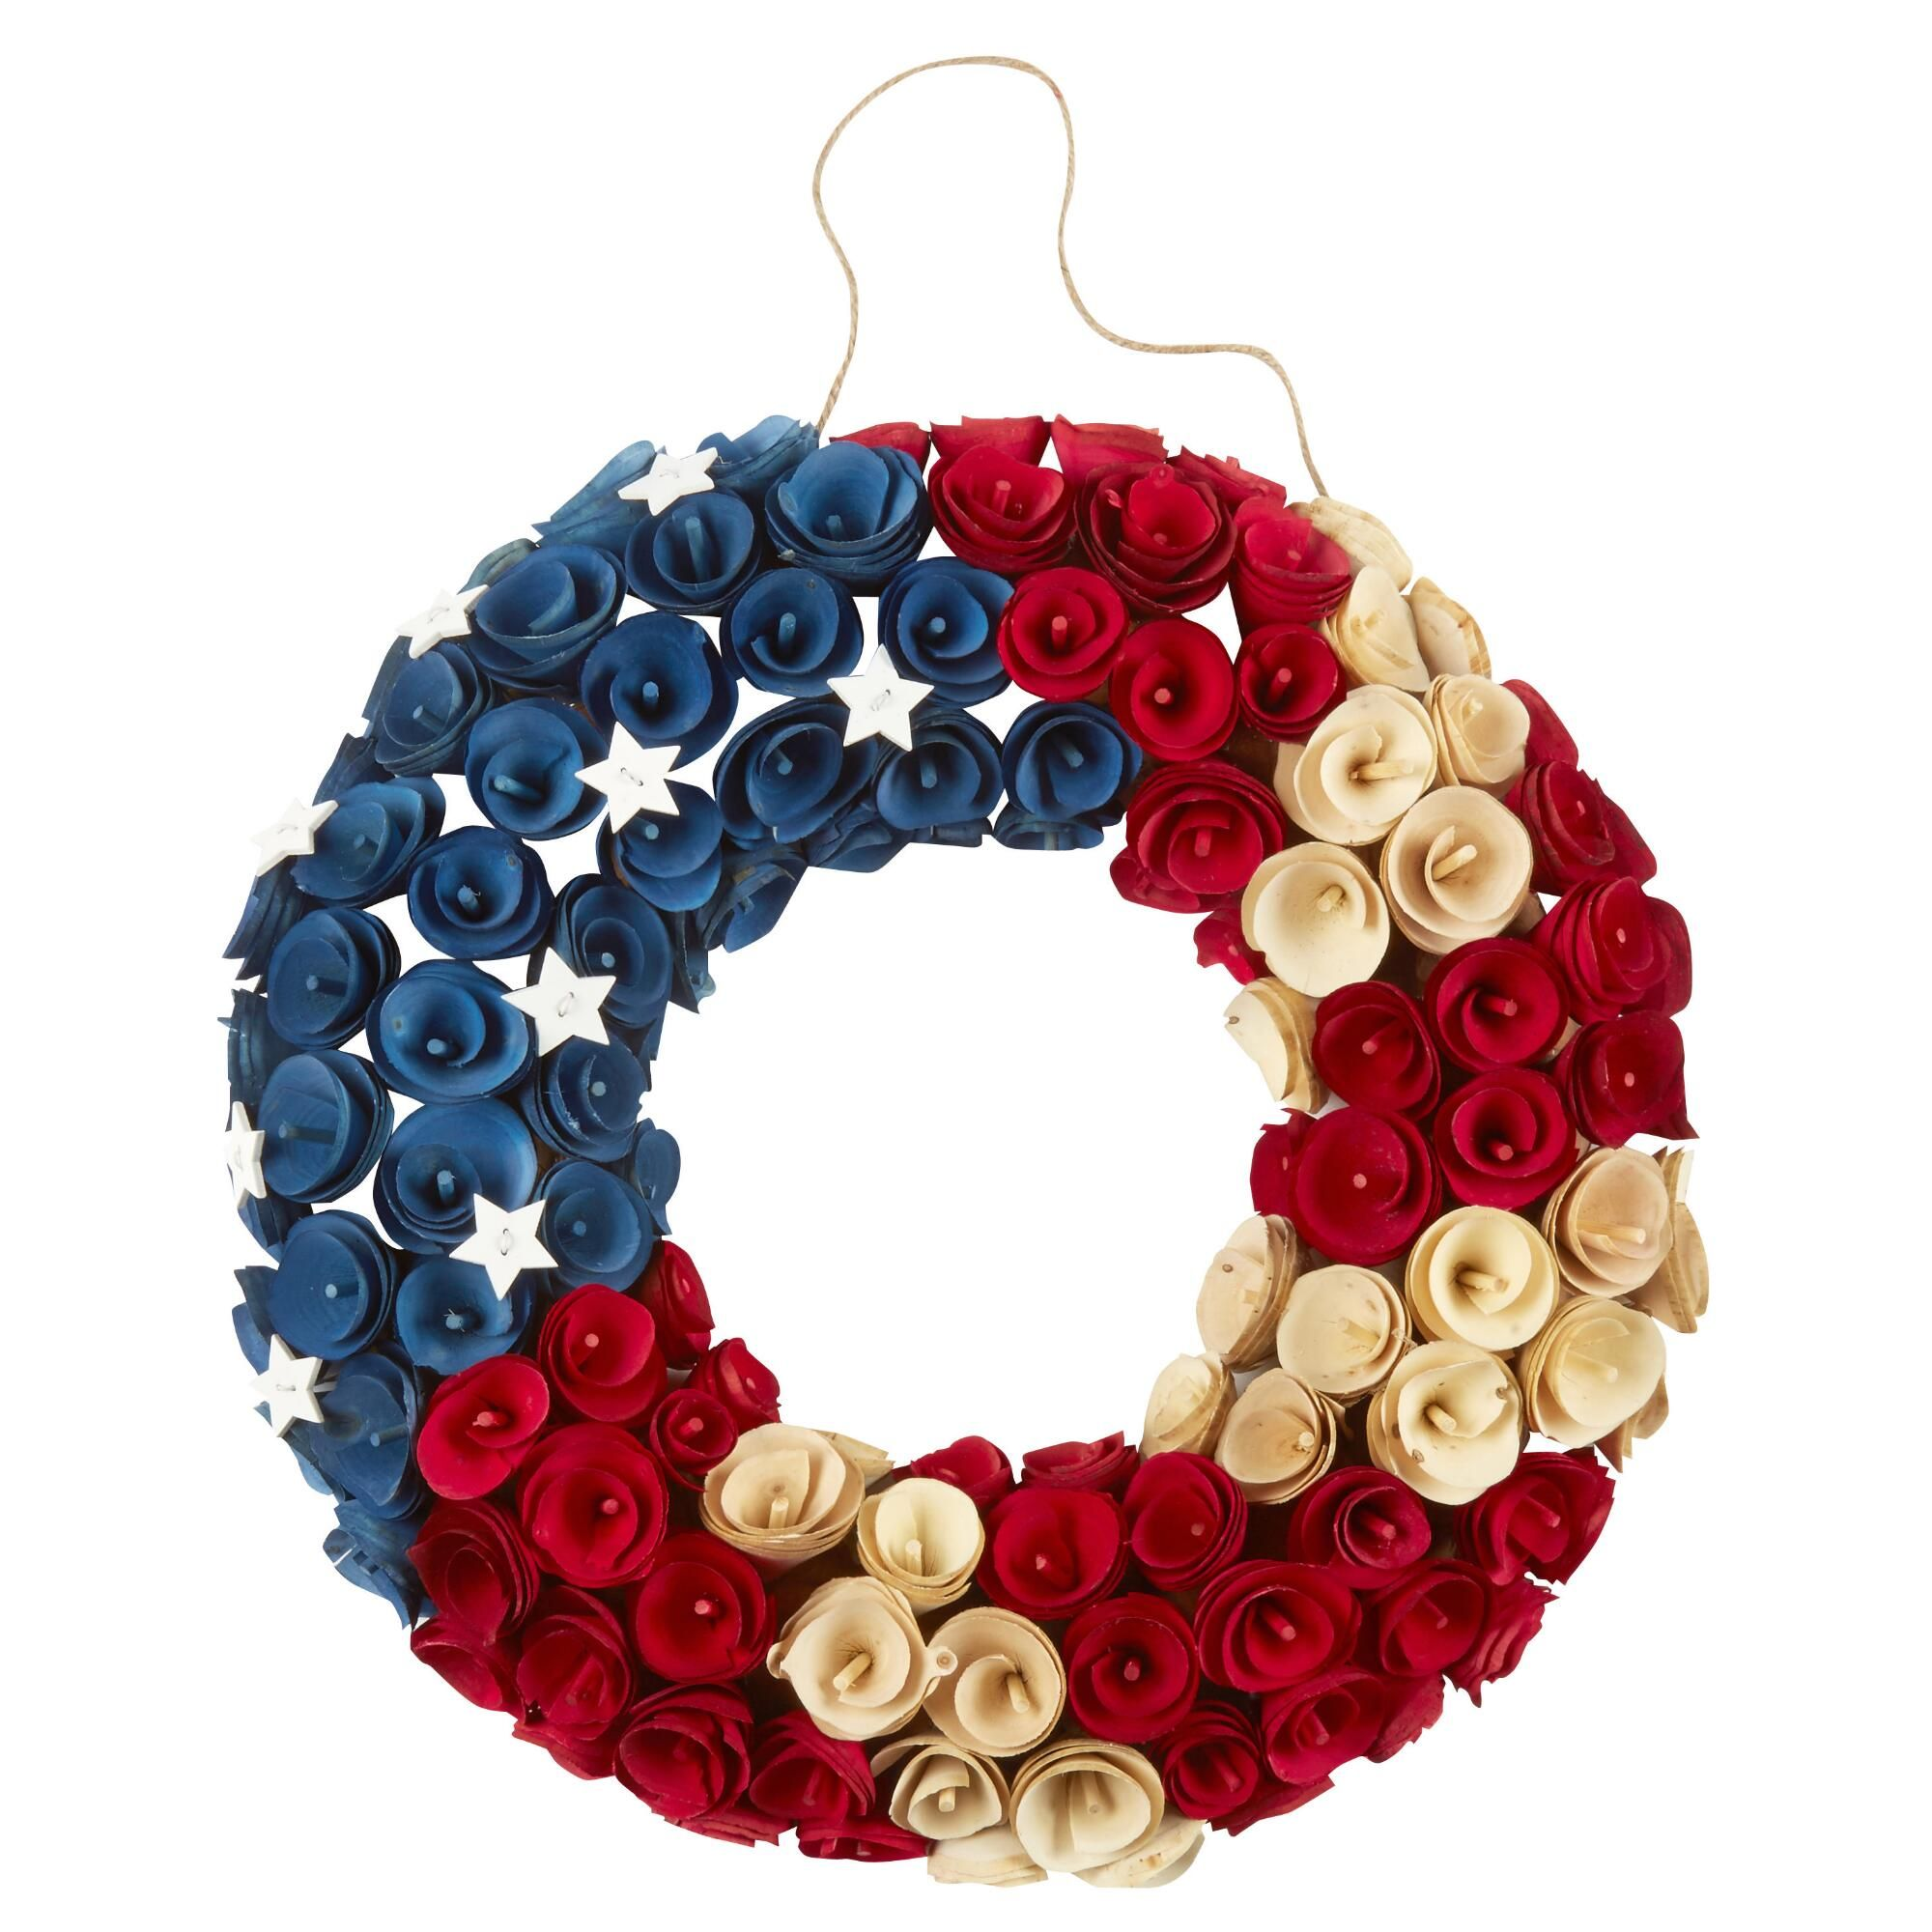 Raise Your Spirits With Our Festive Dried Rose Wreath Accented By White Stars This Patriotic Decor Has A American Flag Wood Rose Wreath Patriotic Decorations